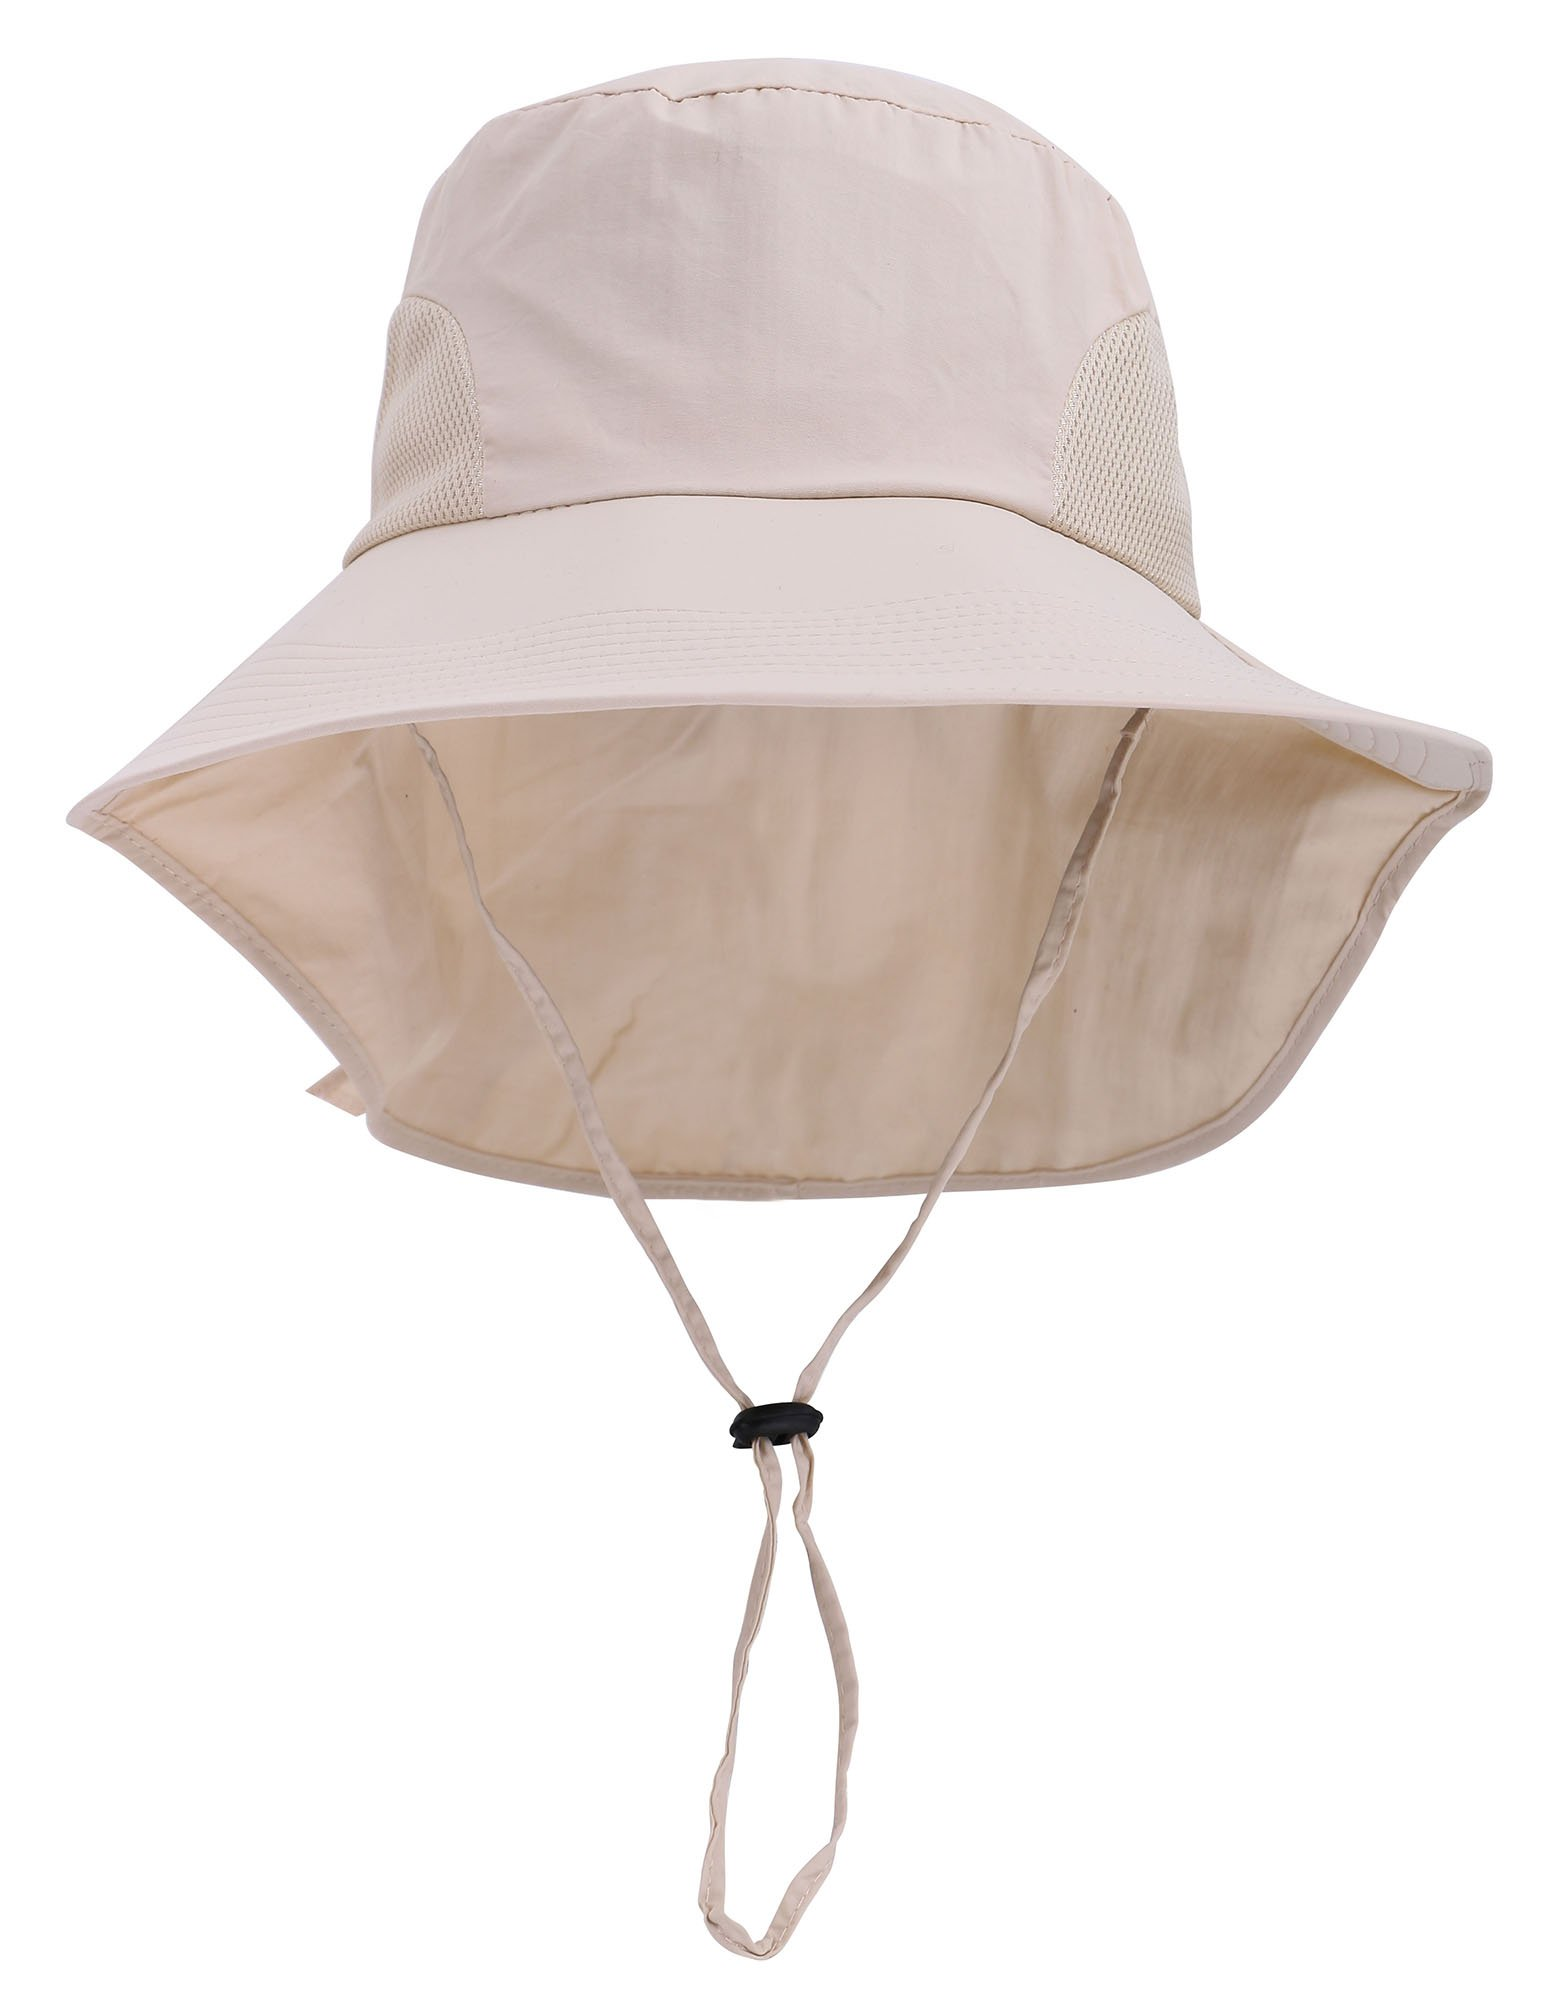 Denovit SPF 50+ UV Sun Protective Foldable Travel Bucket Hat w/Neck Flap,Cream